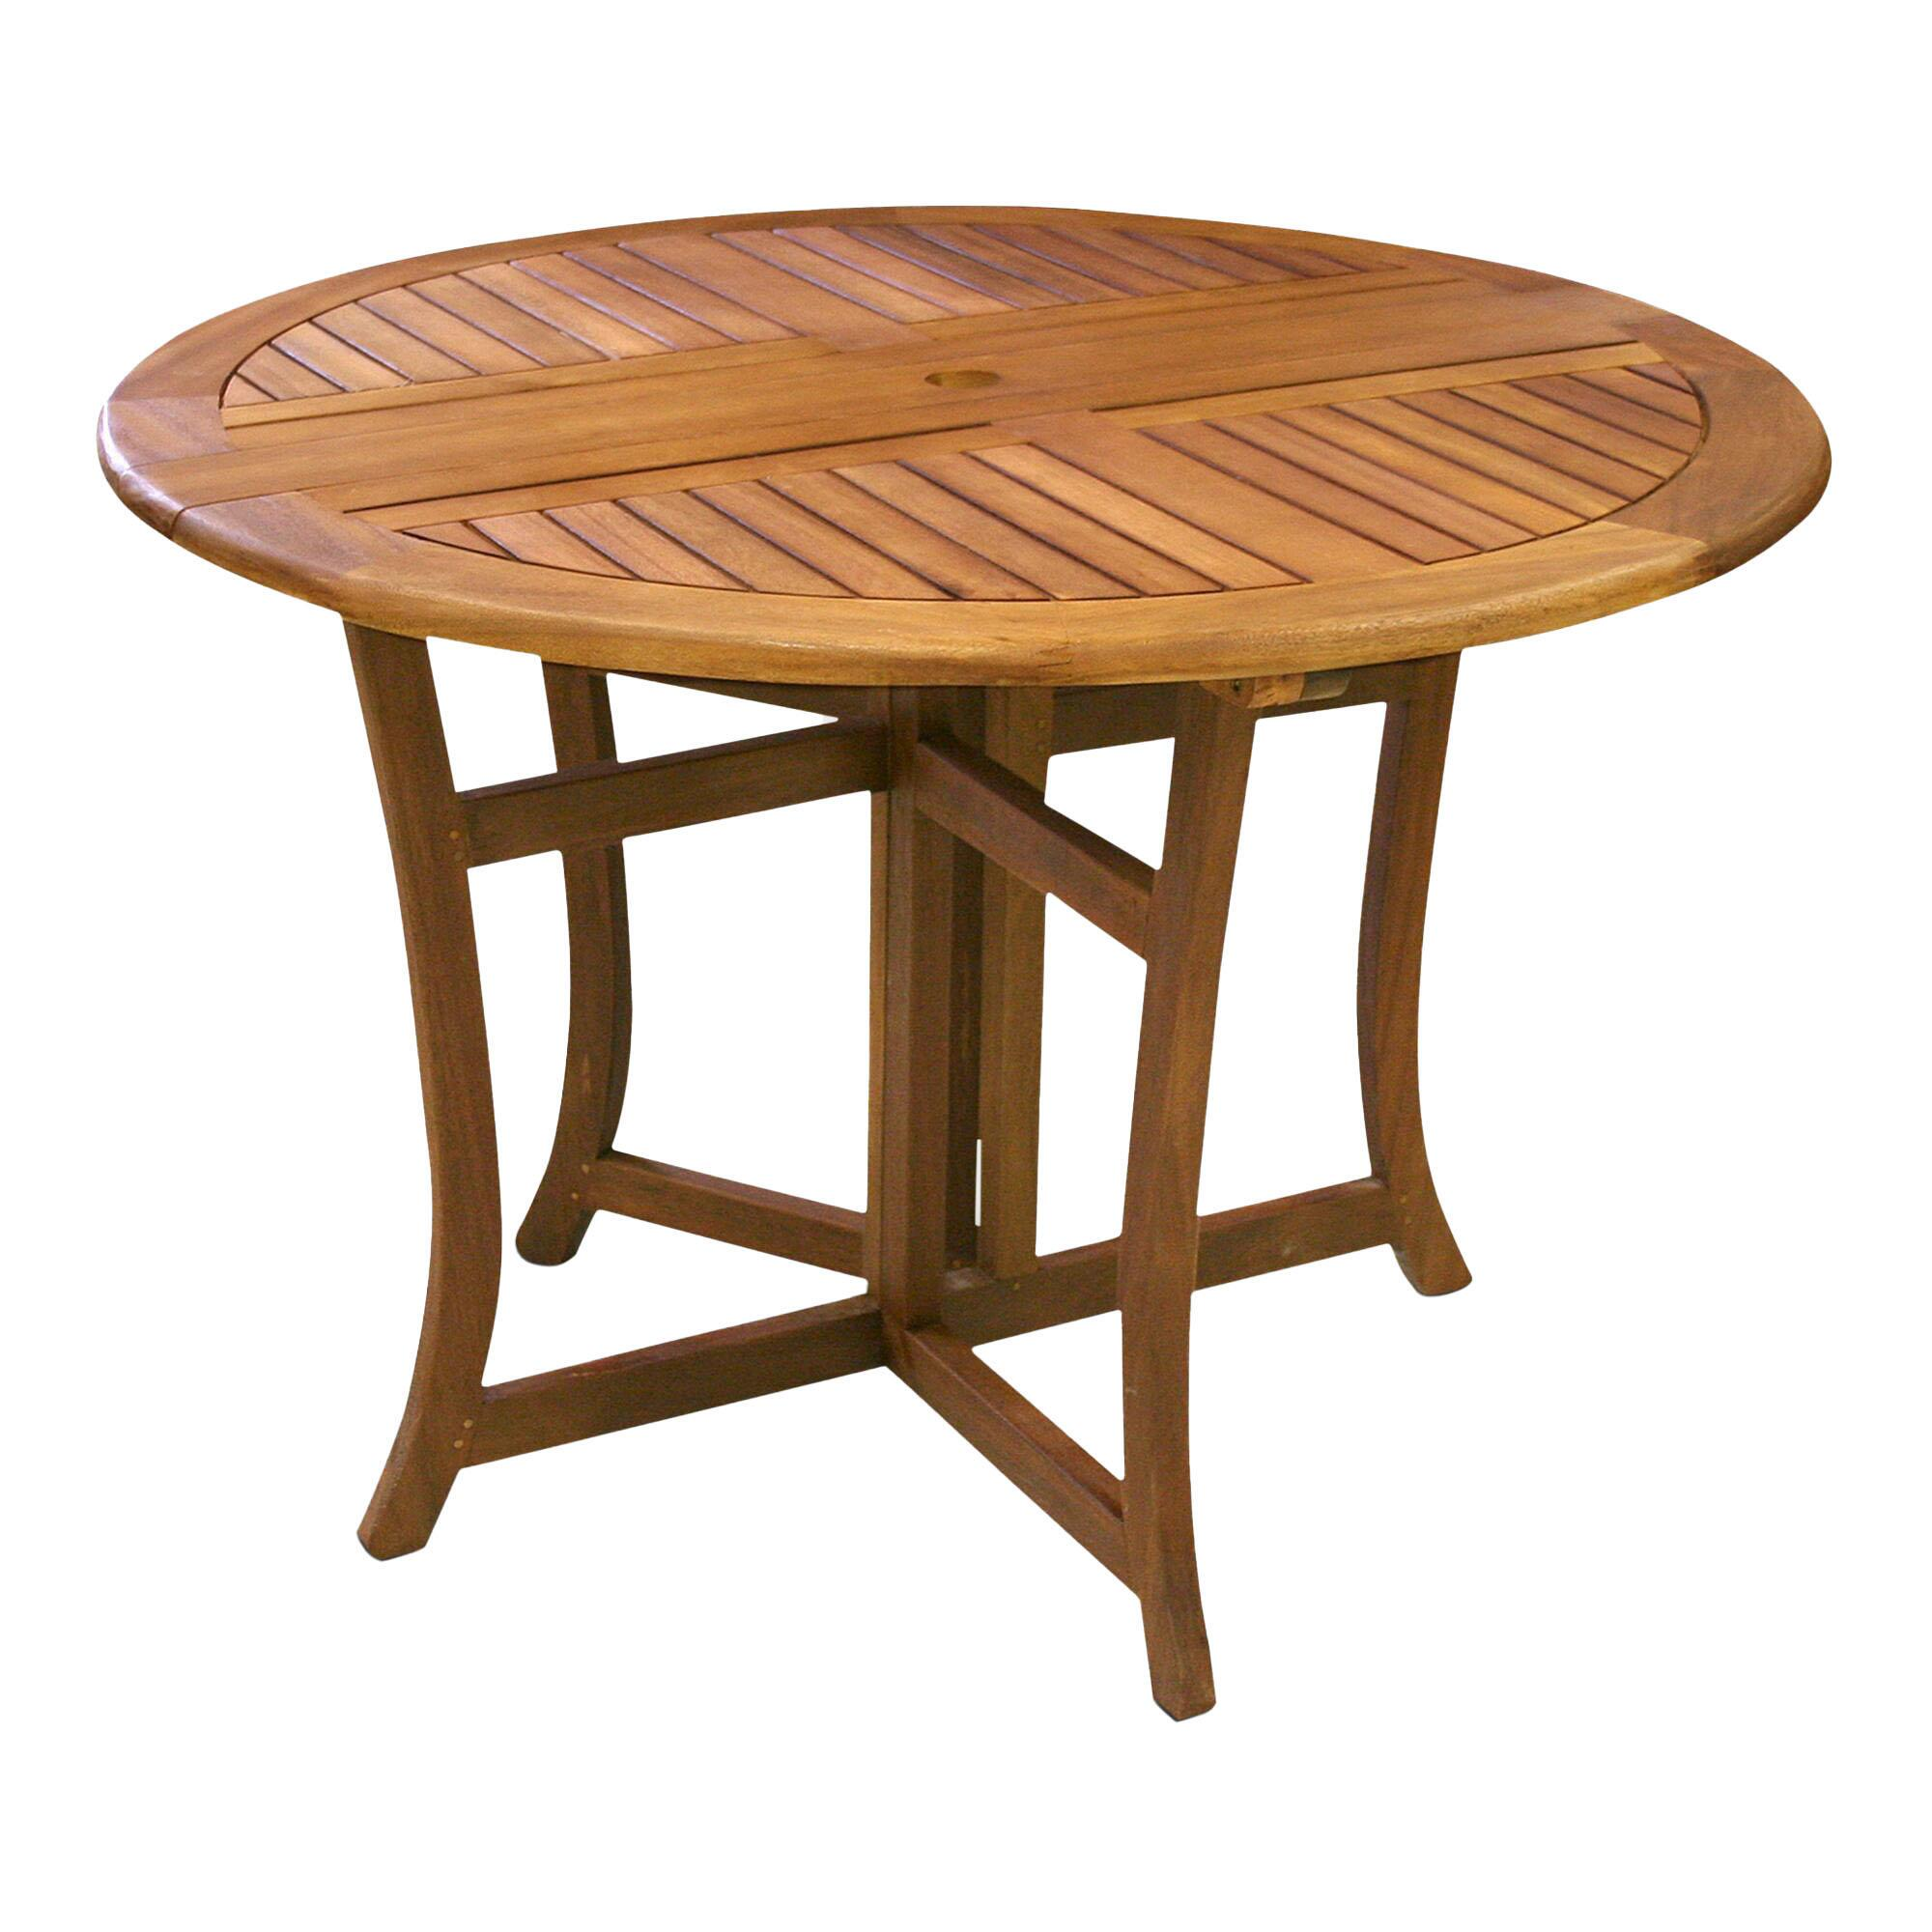 Round wood danner folding table world market for Table design outdoor